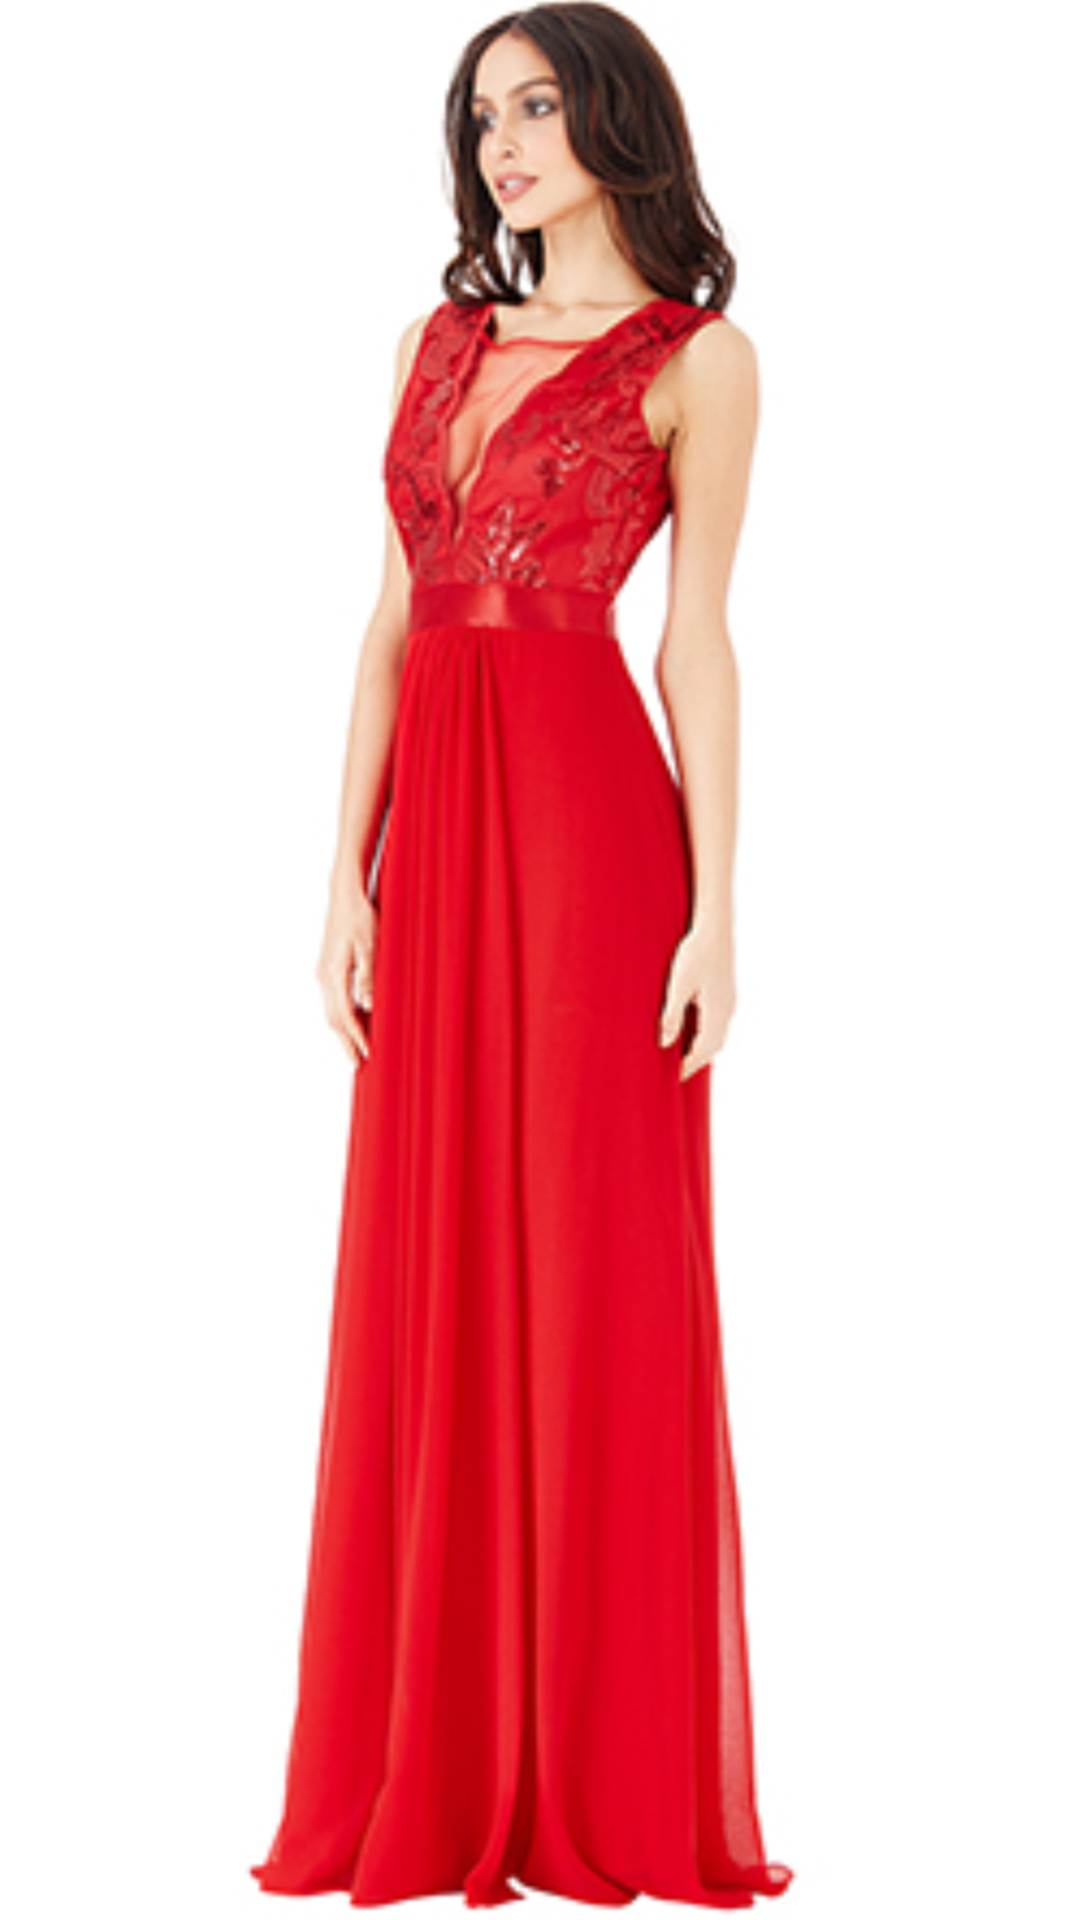 Red chiffon floor length gown